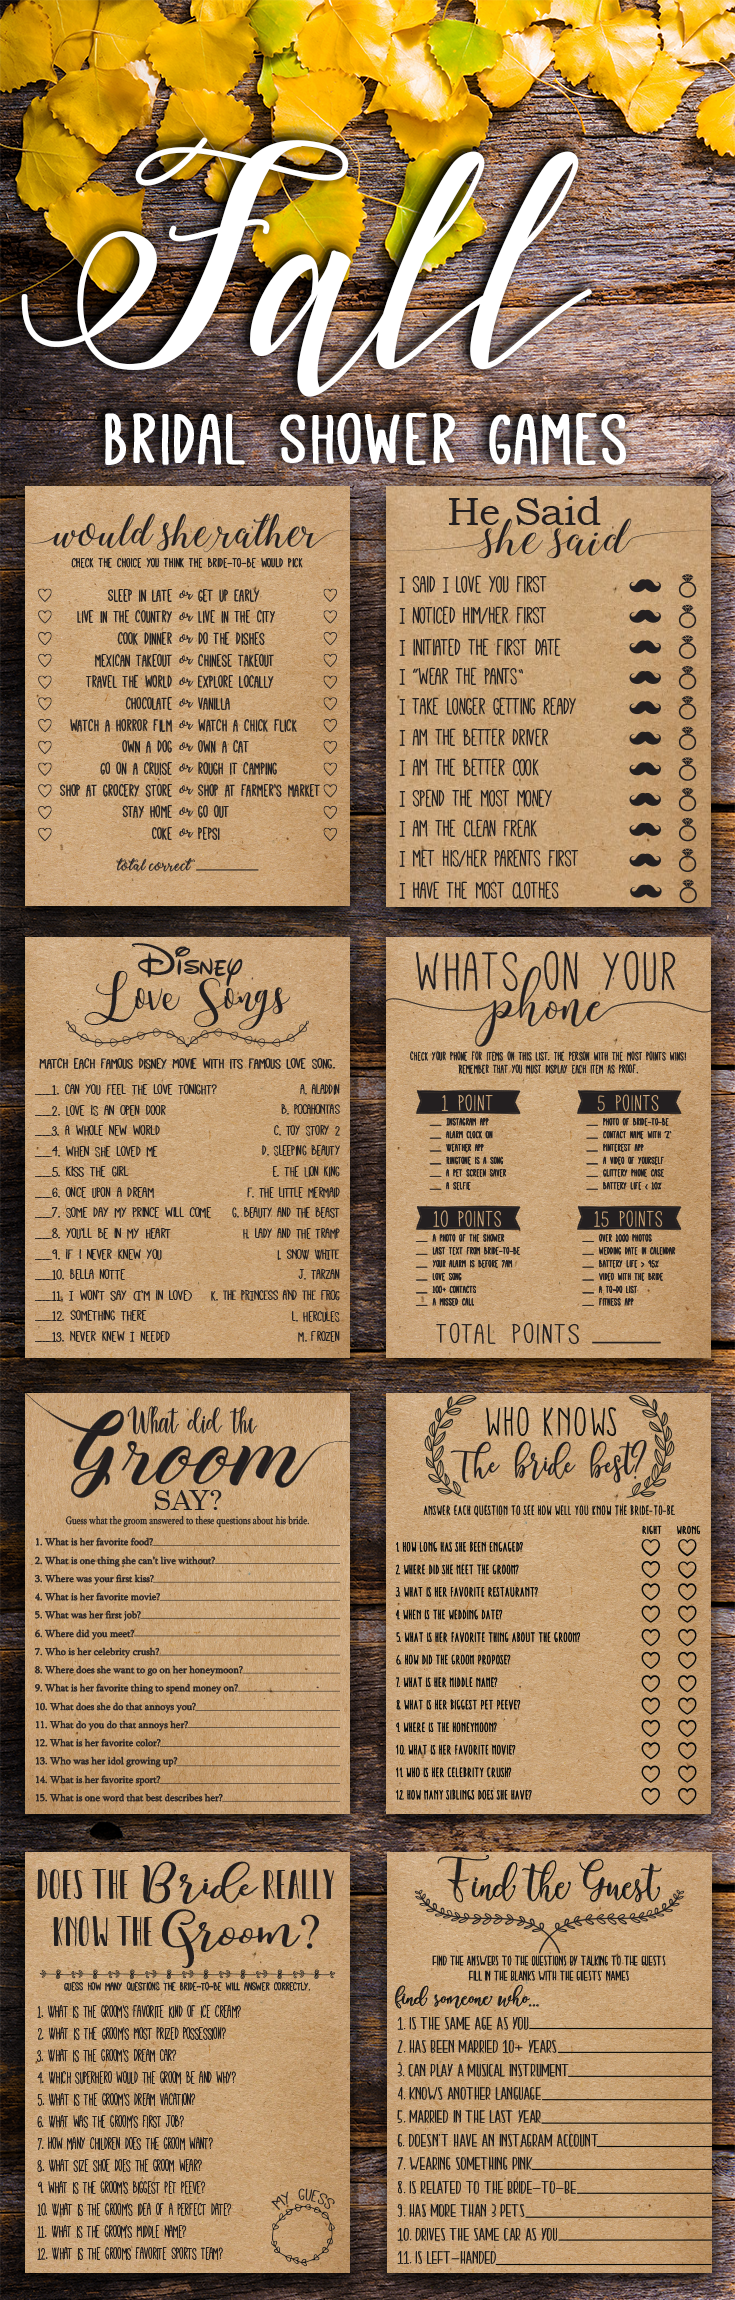 free printable bridal shower games how well do you know the bride%0A bridal shower games  bridal shower games about the bride  bridal shower  games advice